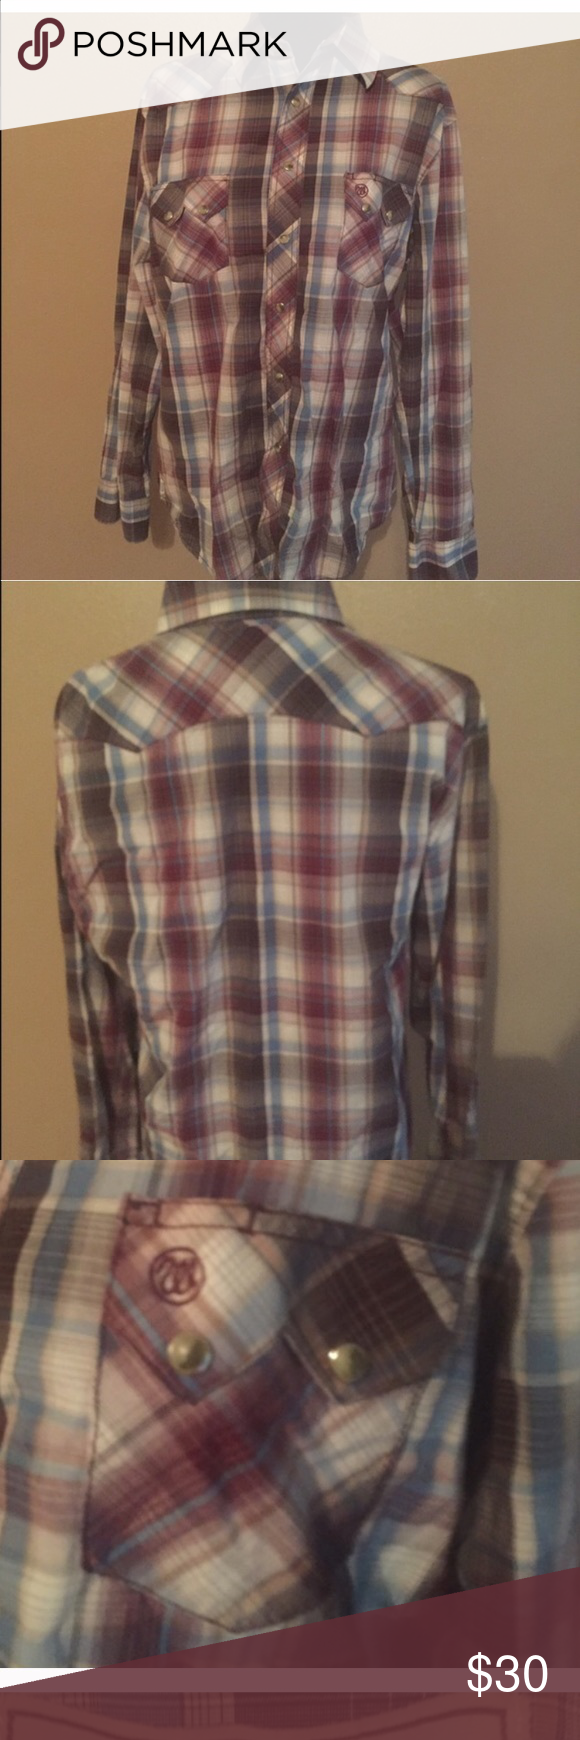 Wrangler American cowboy snap up large Wrangler very good condition snap up. Has pearlized snaps. 21 armpit to armpit and 28 shoulder to hem. We have other similar listings for sale. Bundle and save ! Wrangler Shirts Casual Button Down Shirts